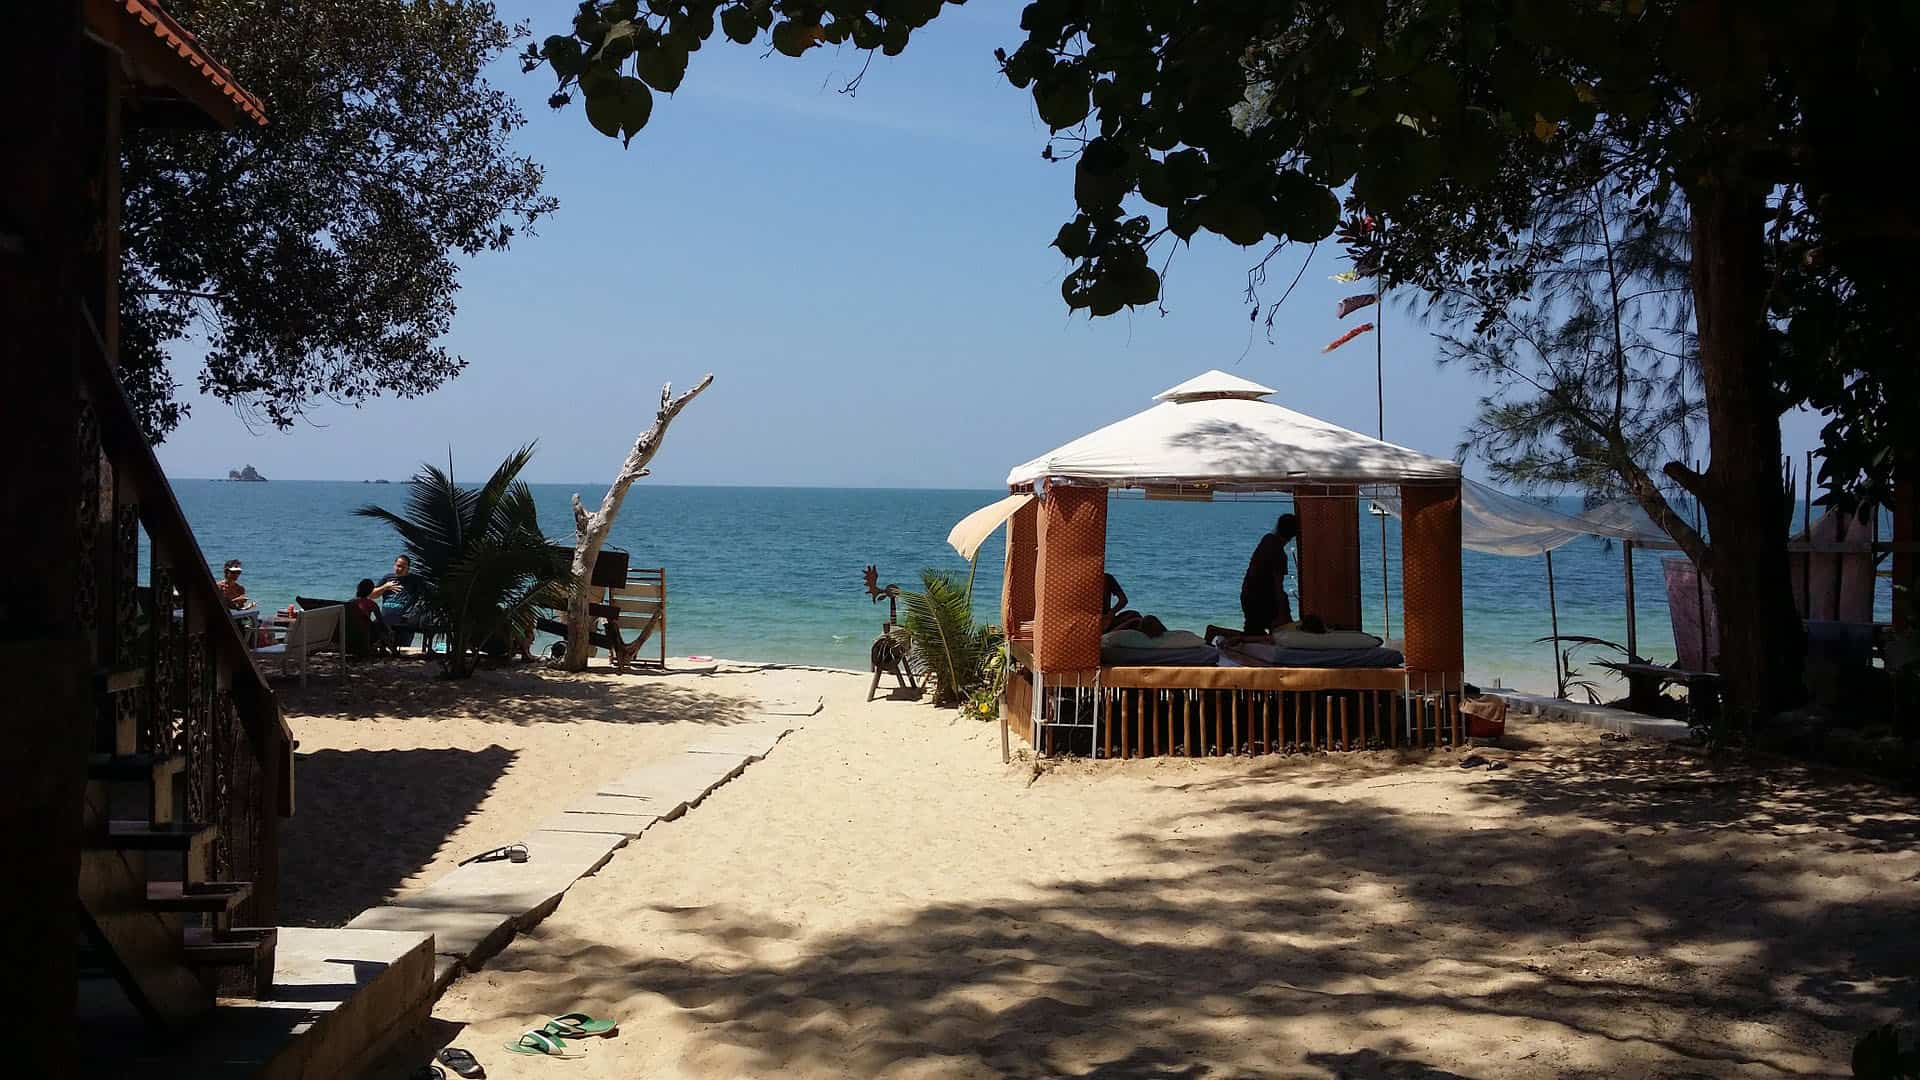 Thai Massage on Beach - pix